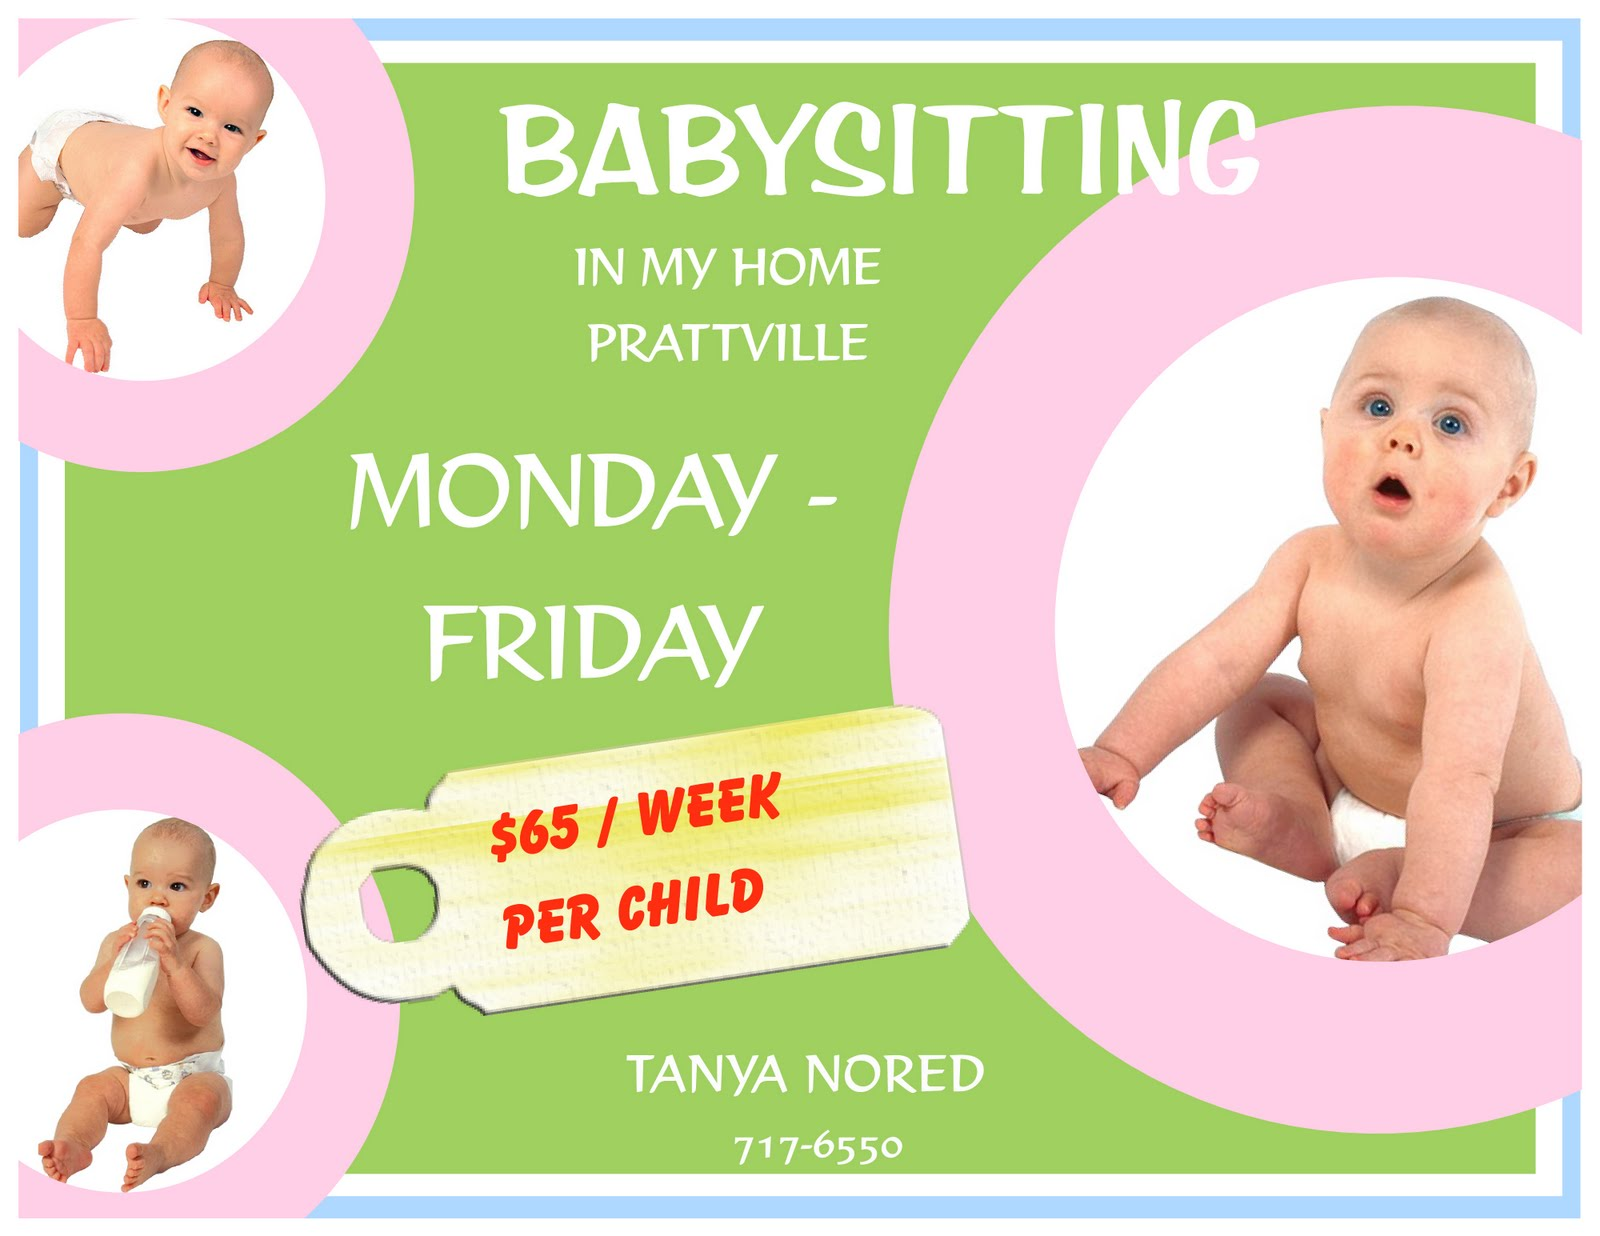 babysitting+ads+examples